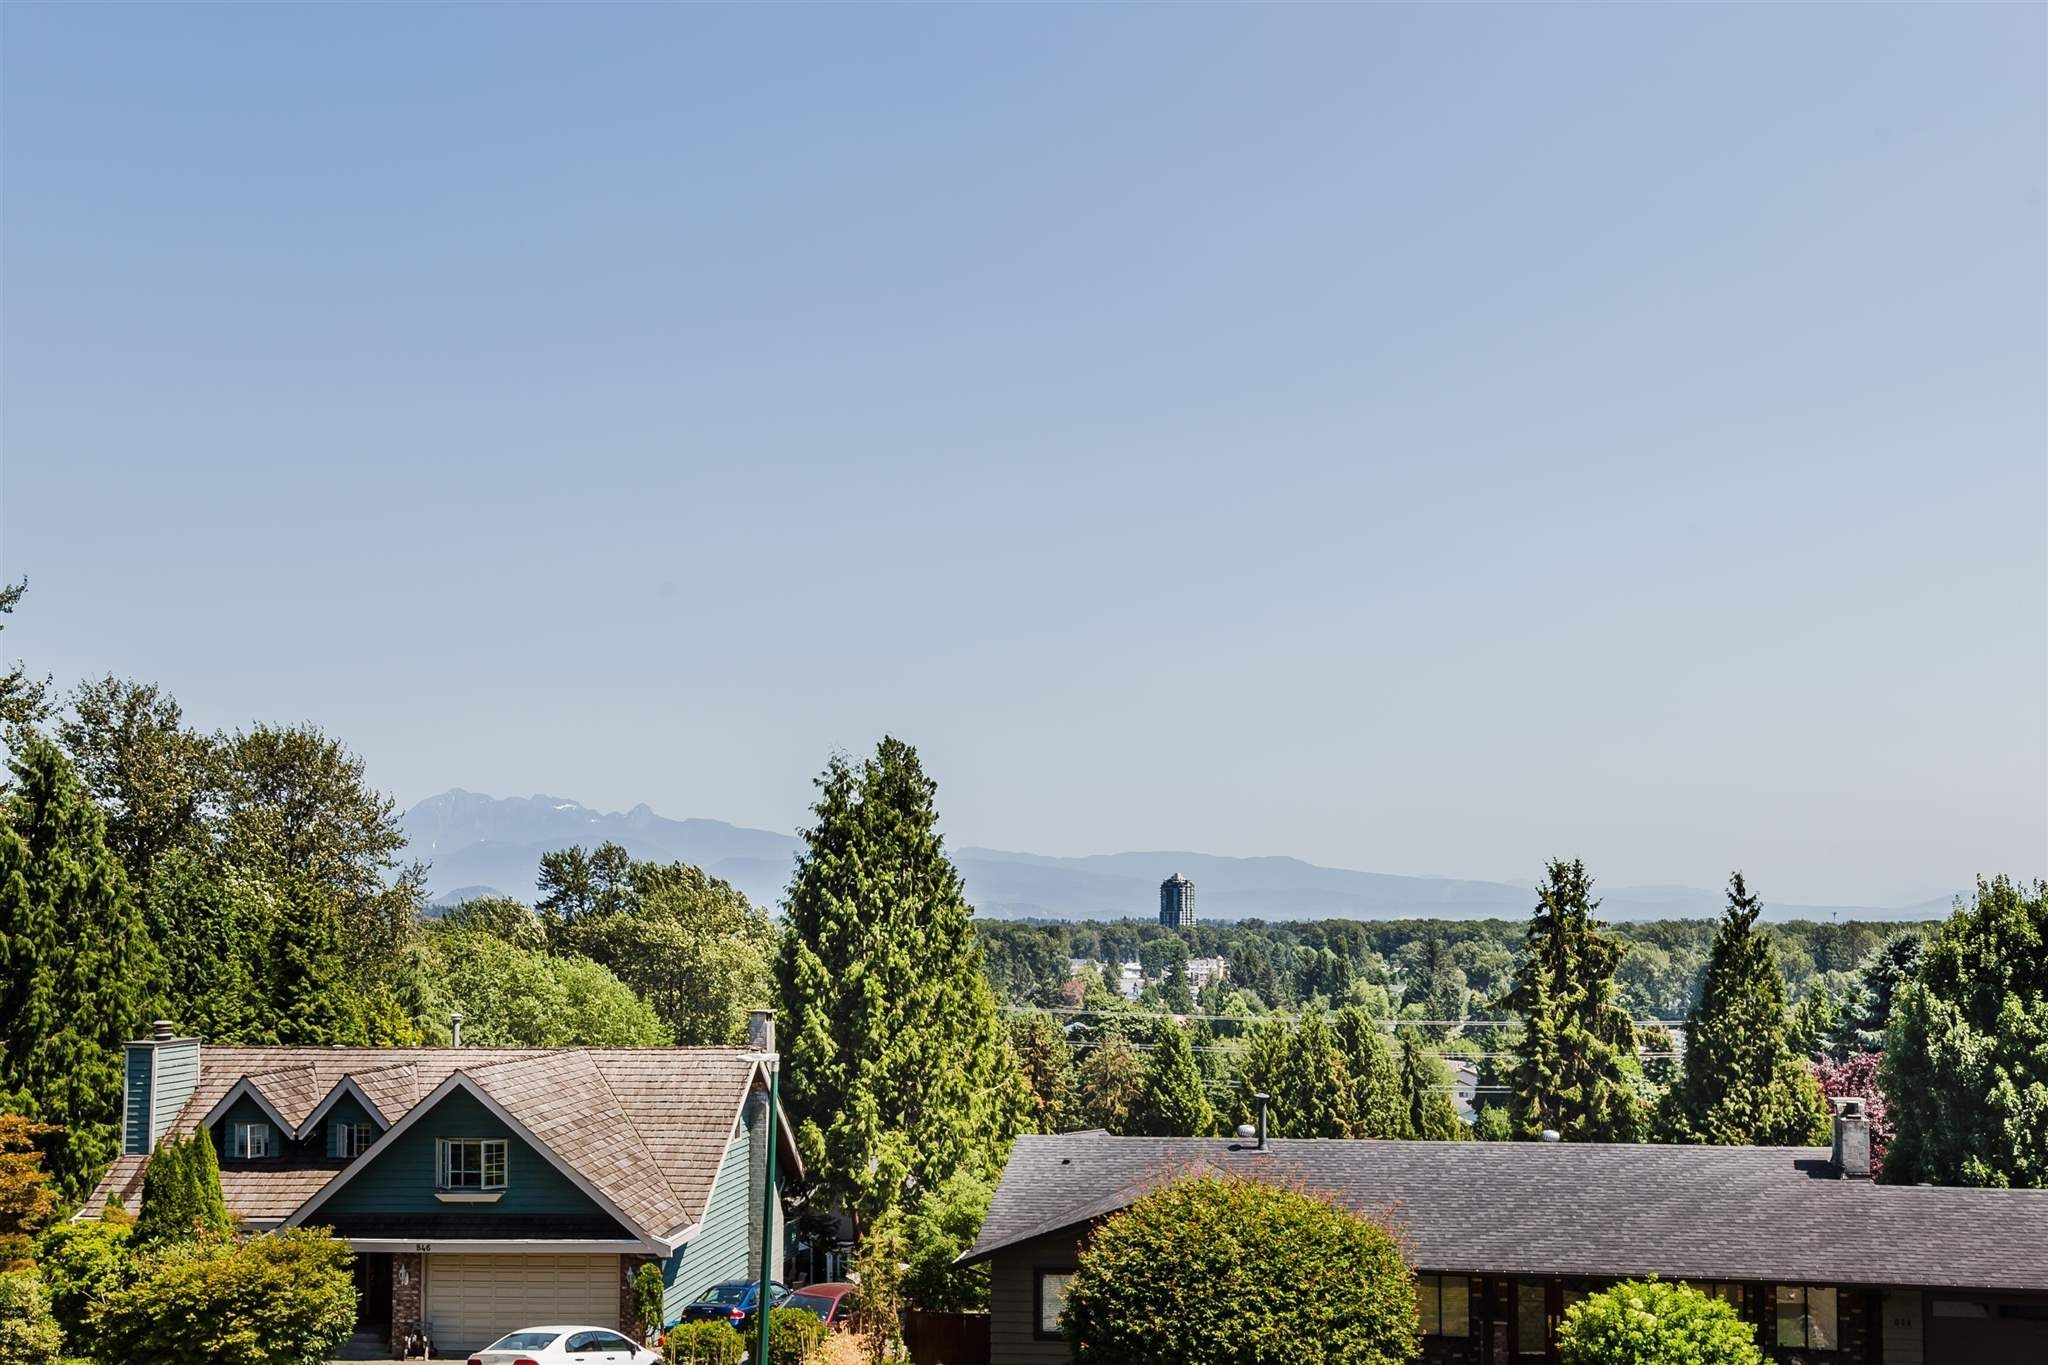 enjoy valley views to the east and Mount Baker